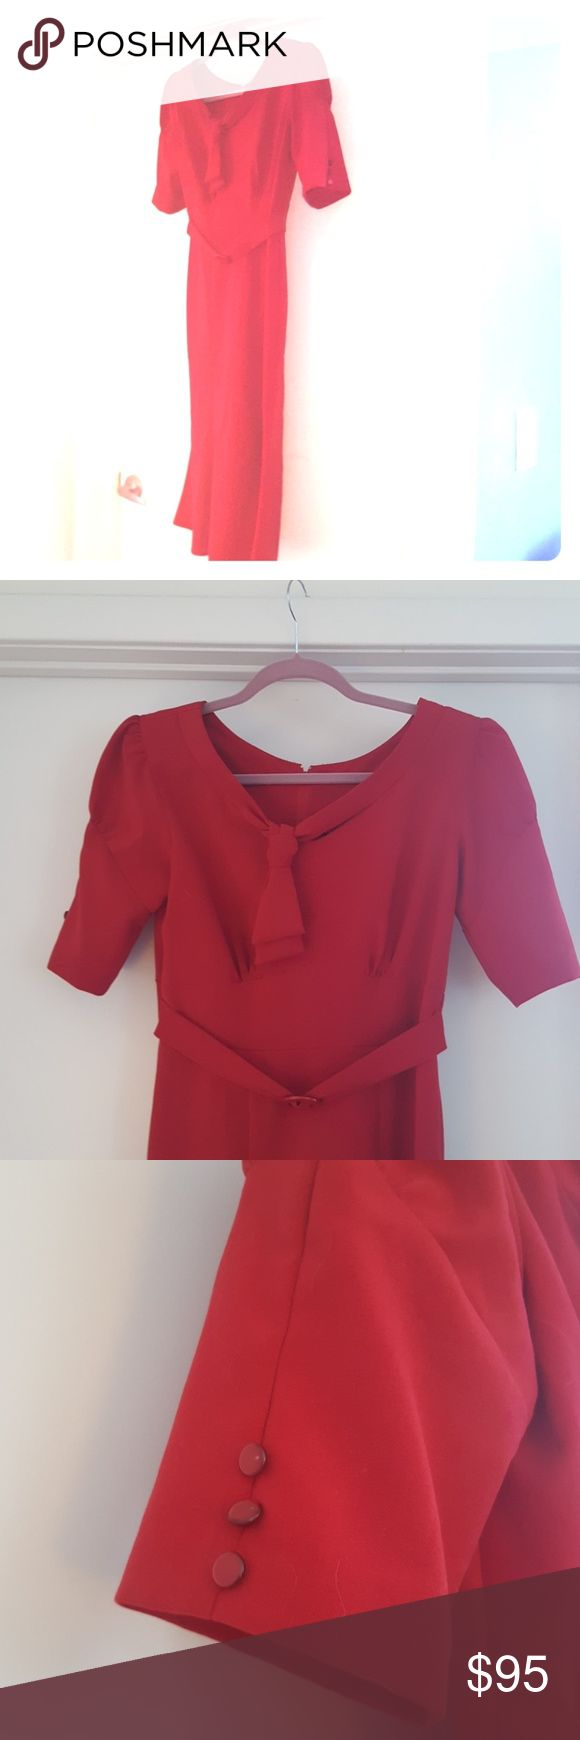 Stop Staring! Retro dress Vintage sz M PRICED TO NEGOTIATE. make an offer. Stop Staring! Retro dress Vintage sz M red. Worn once for a Vintage party! Very form fitting. If you have never owned an Alicia Estrada Stop Staring dress you should try! Sooo well cut they are sure to suit anyone. trumpet style super flattering would fit a regular SIZE 8 (me at the time) or a 6 less tight :) ask me questions! Stop Staring Dresses Midi